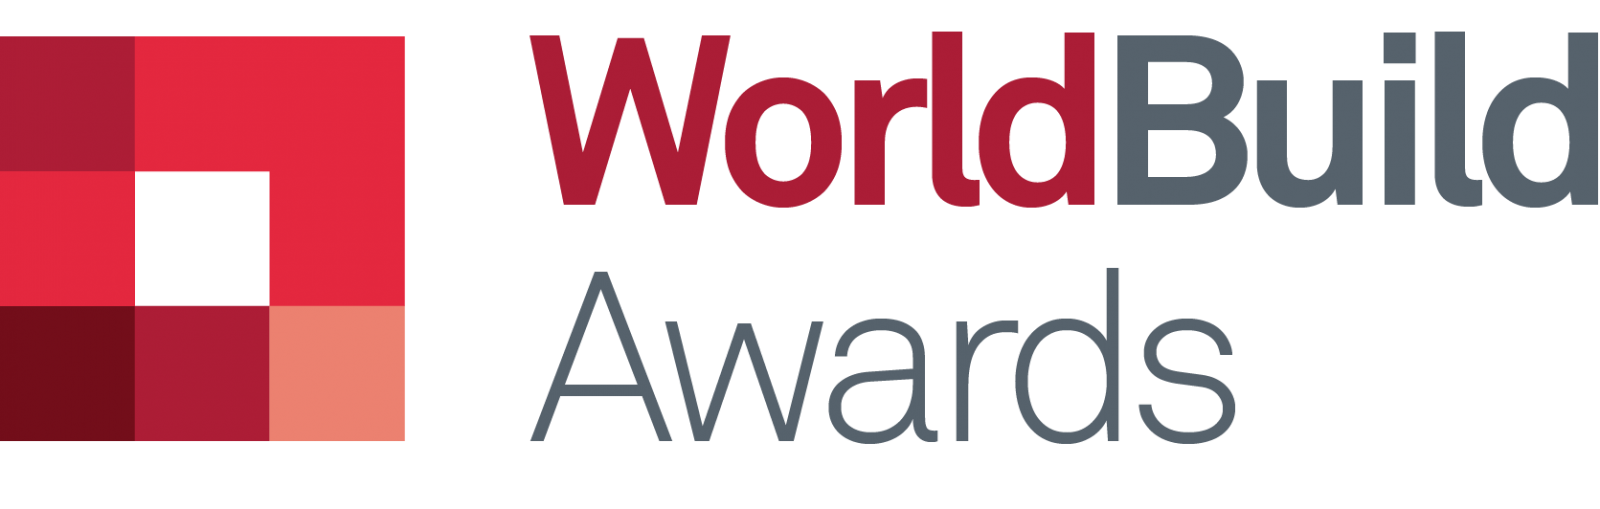 Премия WORLDBUILD AWARDS 2019